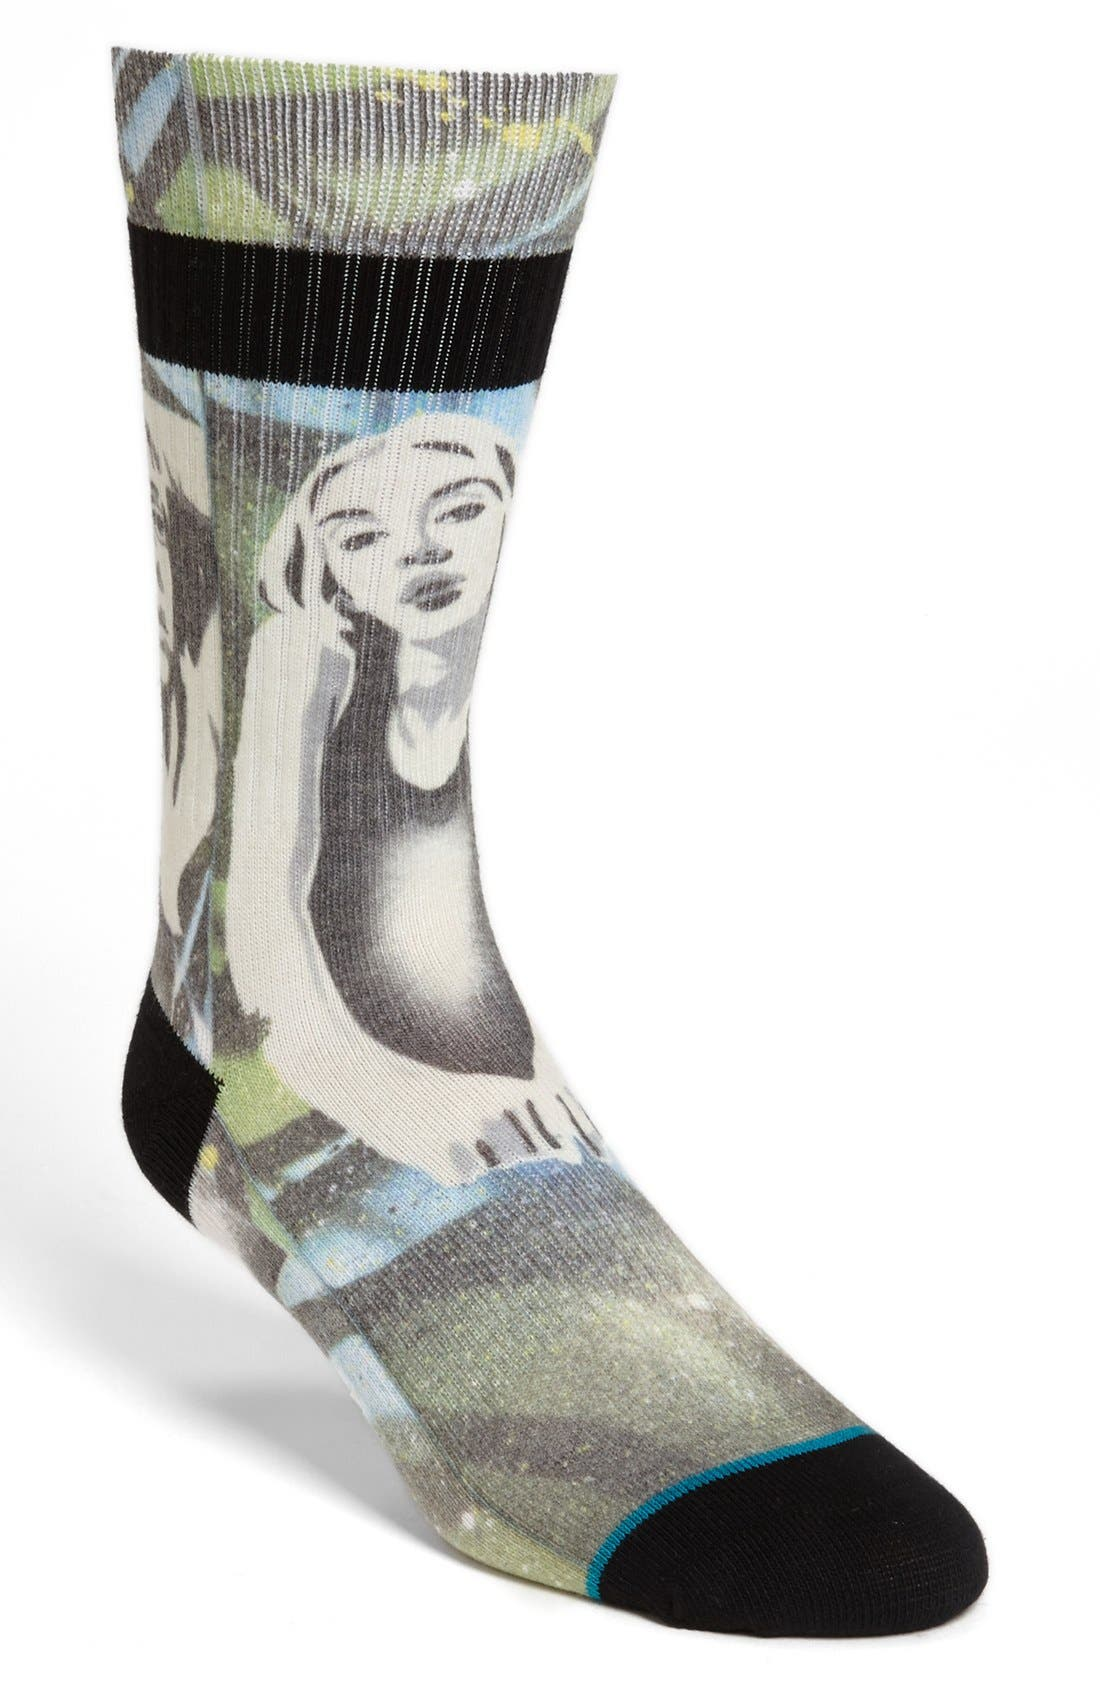 Alternate Image 1 Selected - Stance 'Oblanna' Socks